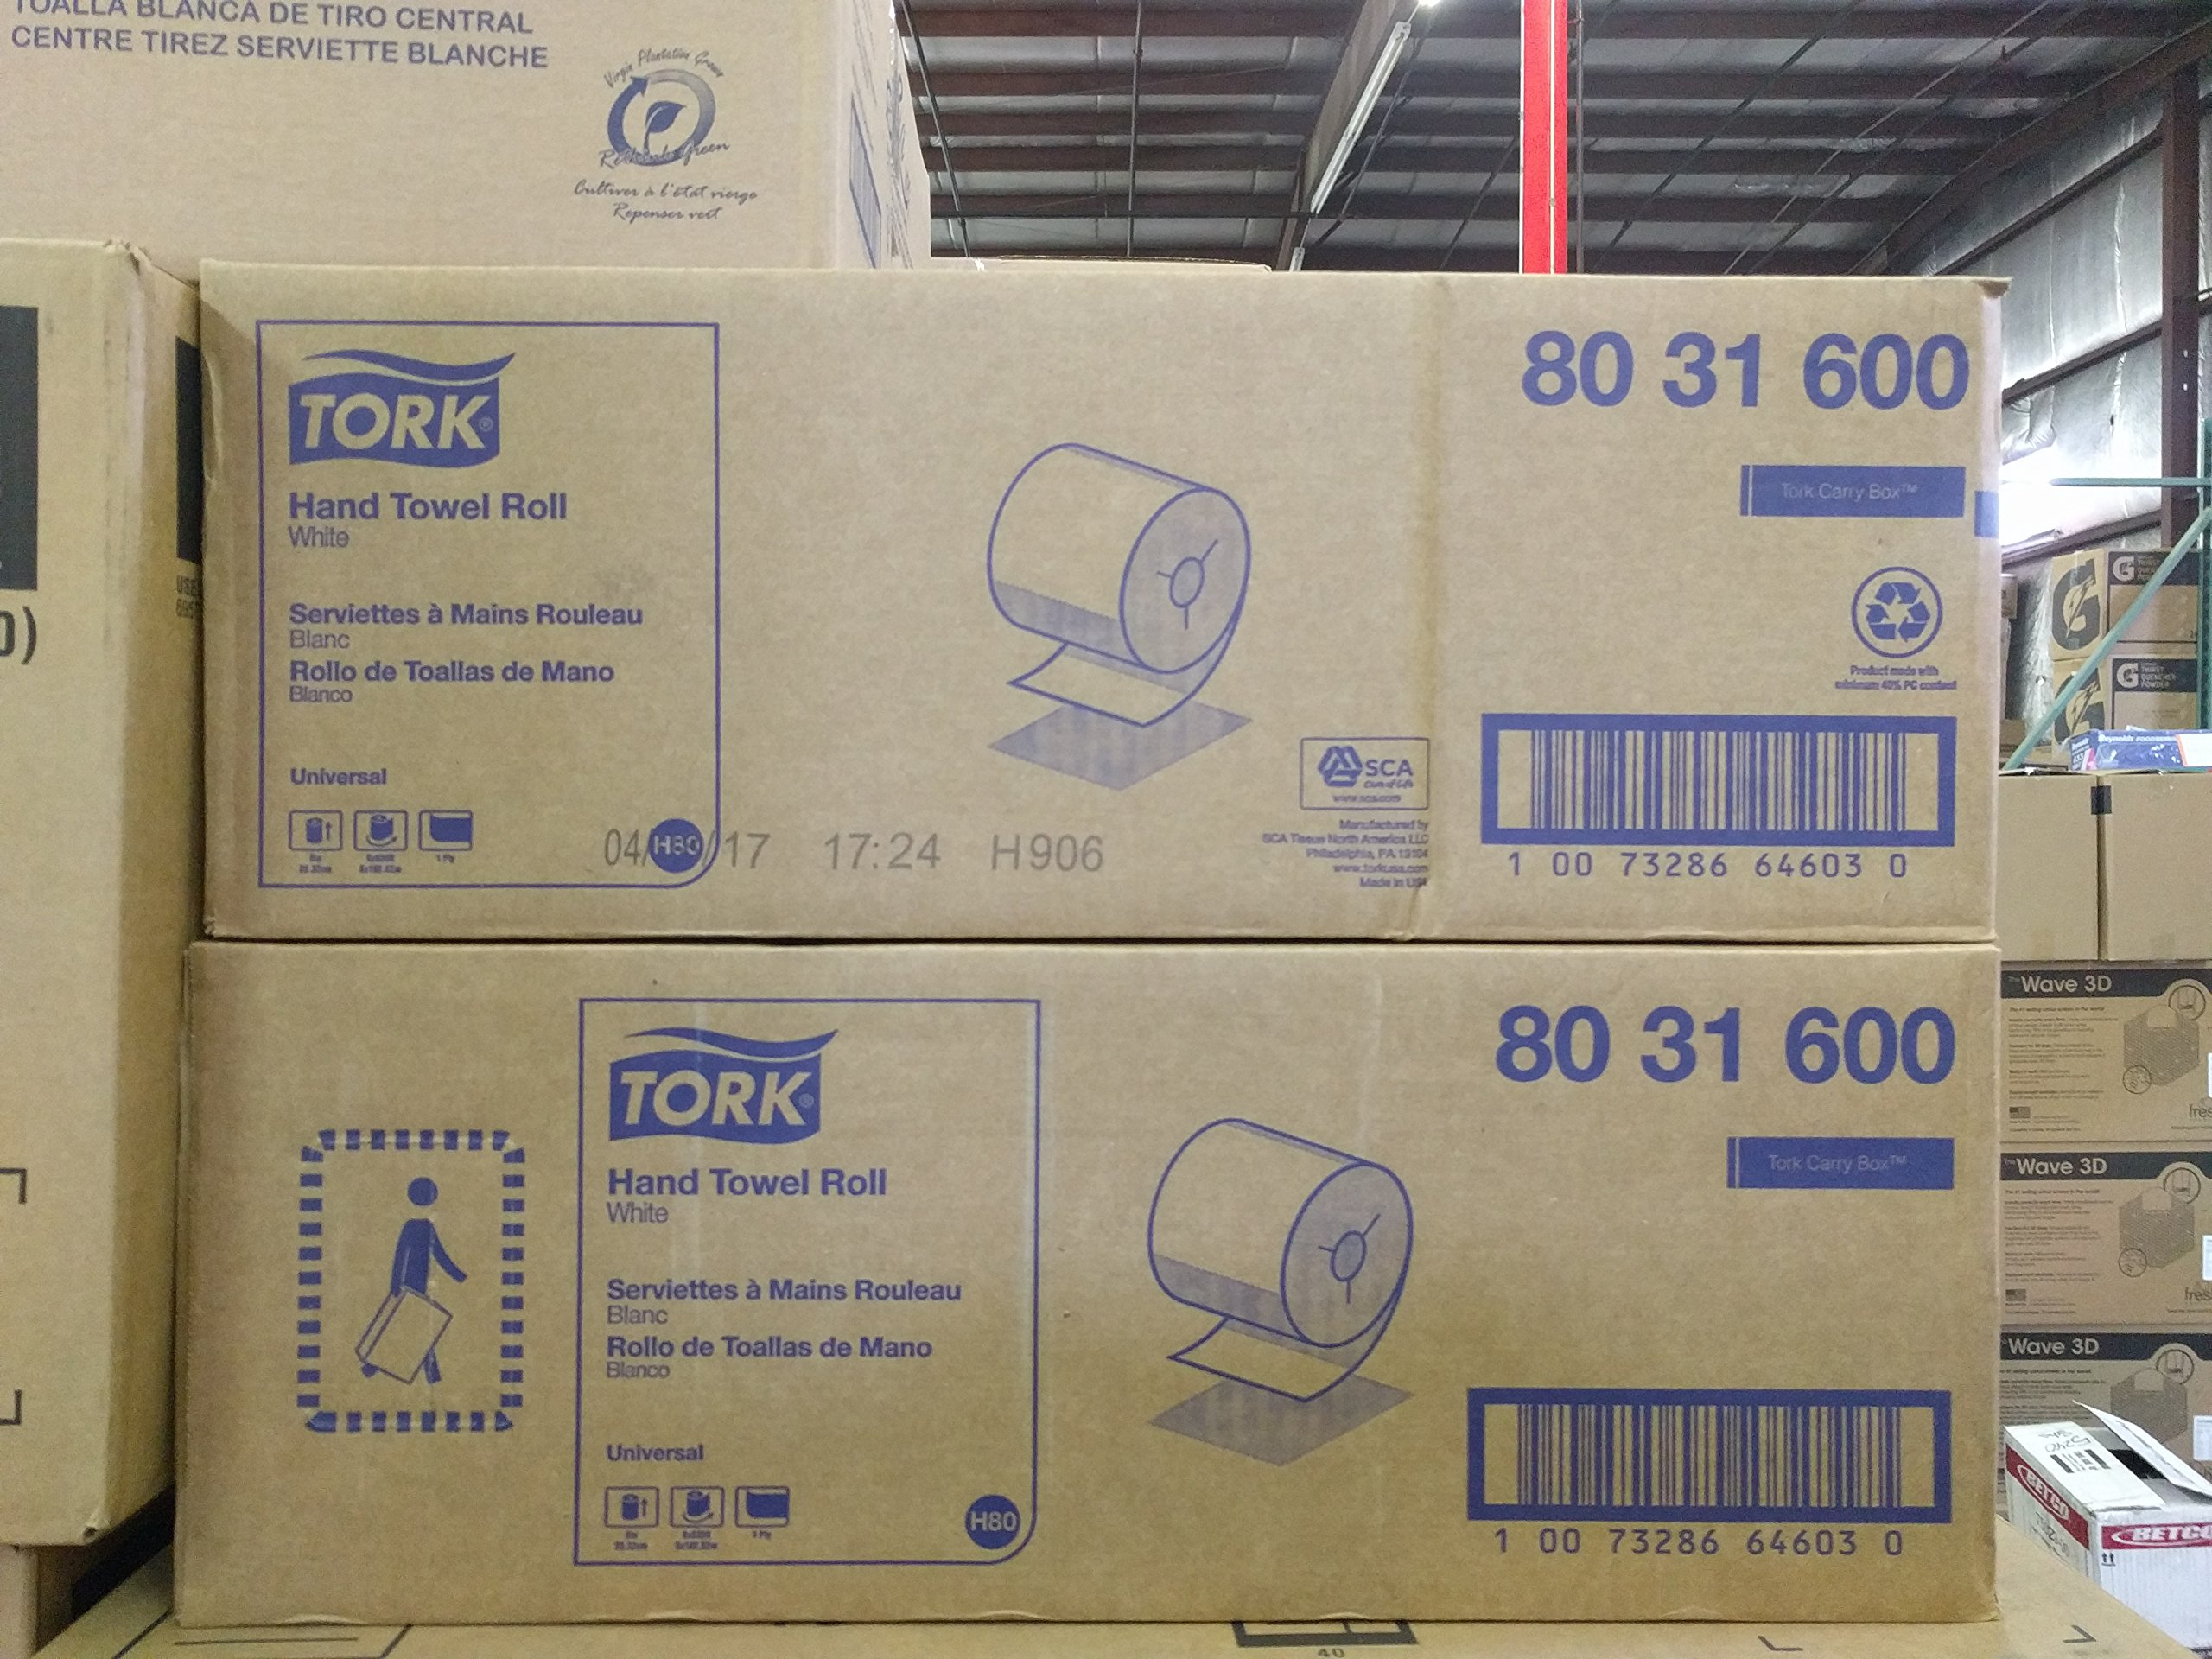 Tork Wausau Paper 80 - 31600 Ecosoft Paper Towel Rolls - White - Case of 6 - White